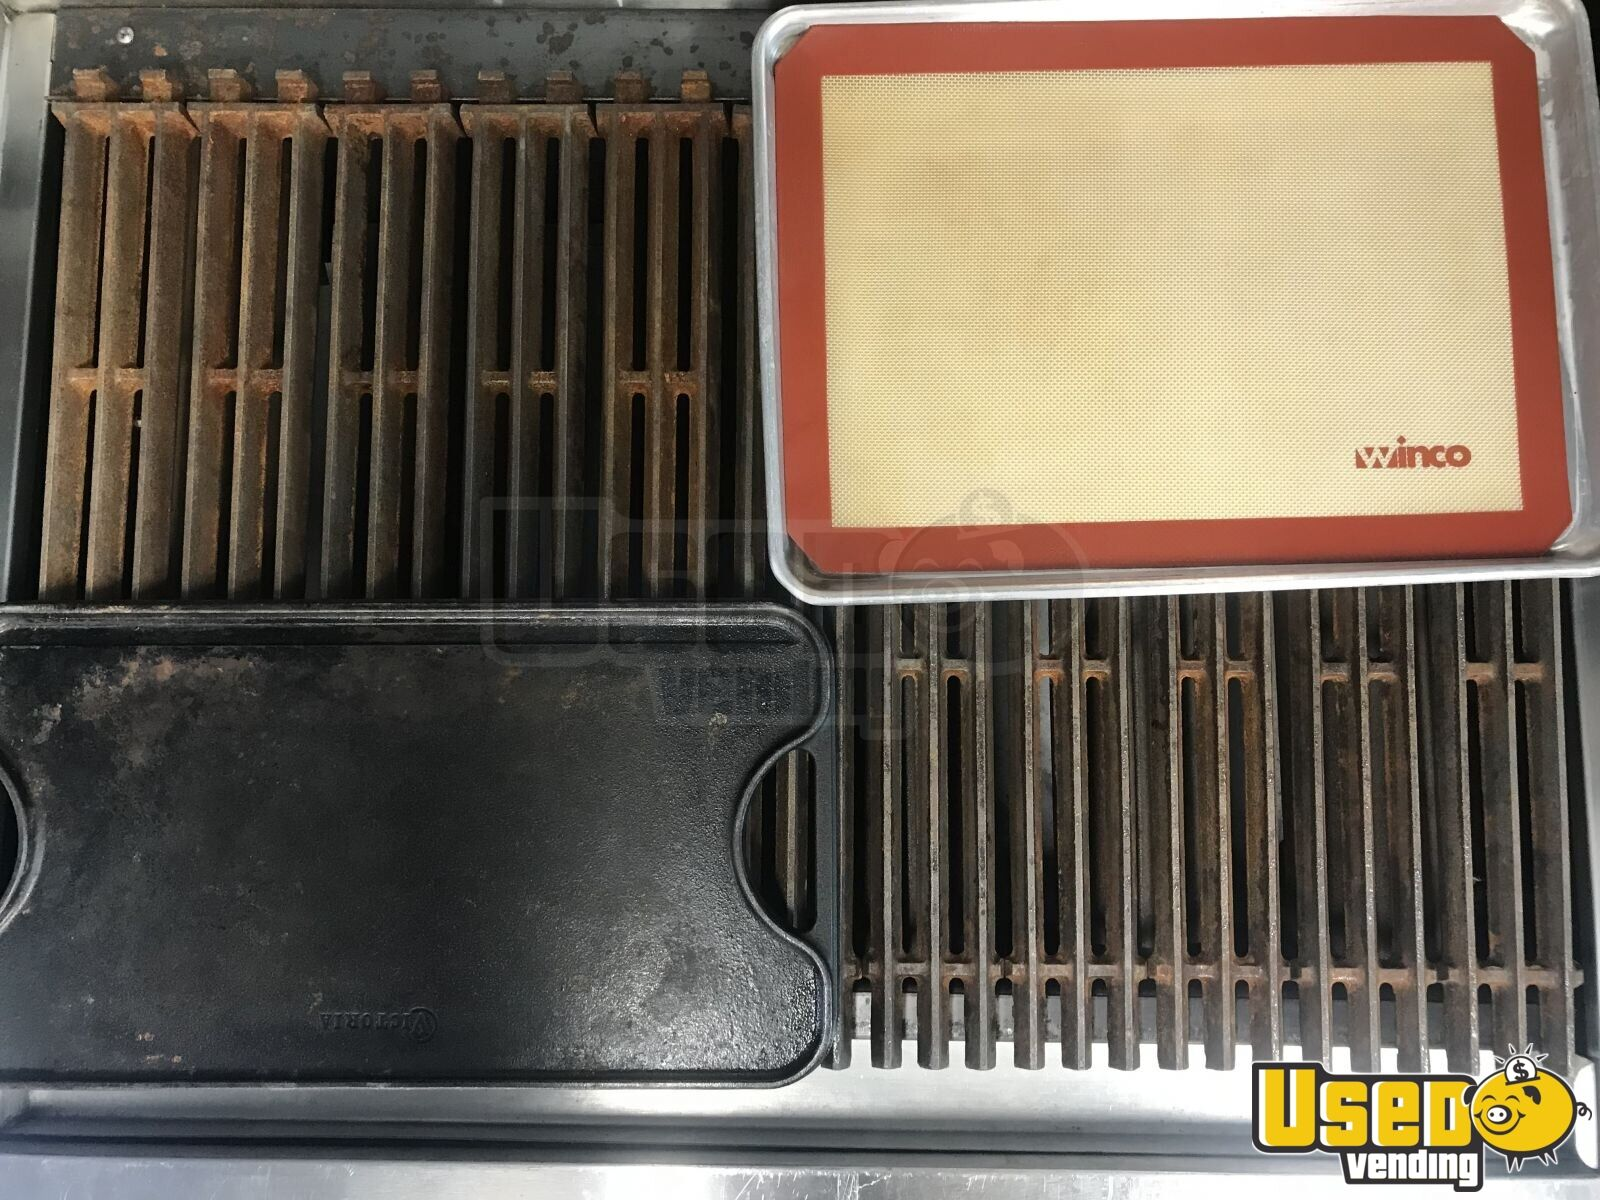 1989 Gmc Food Truck Prep Station Cooler California Gas Engine for Sale - 12